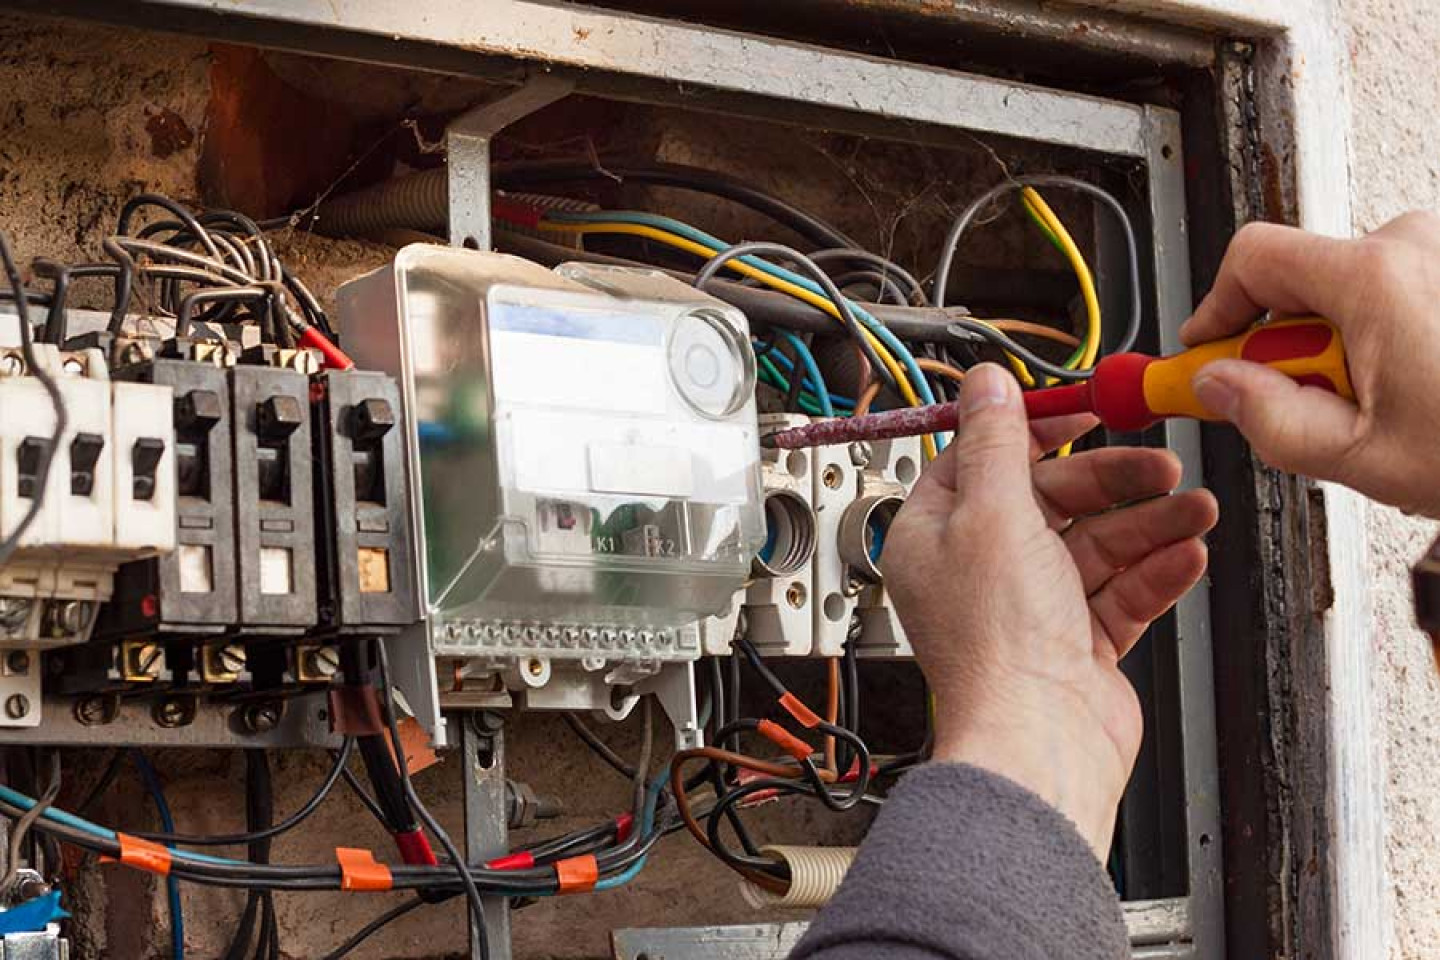 Comprehensive electrical repair service